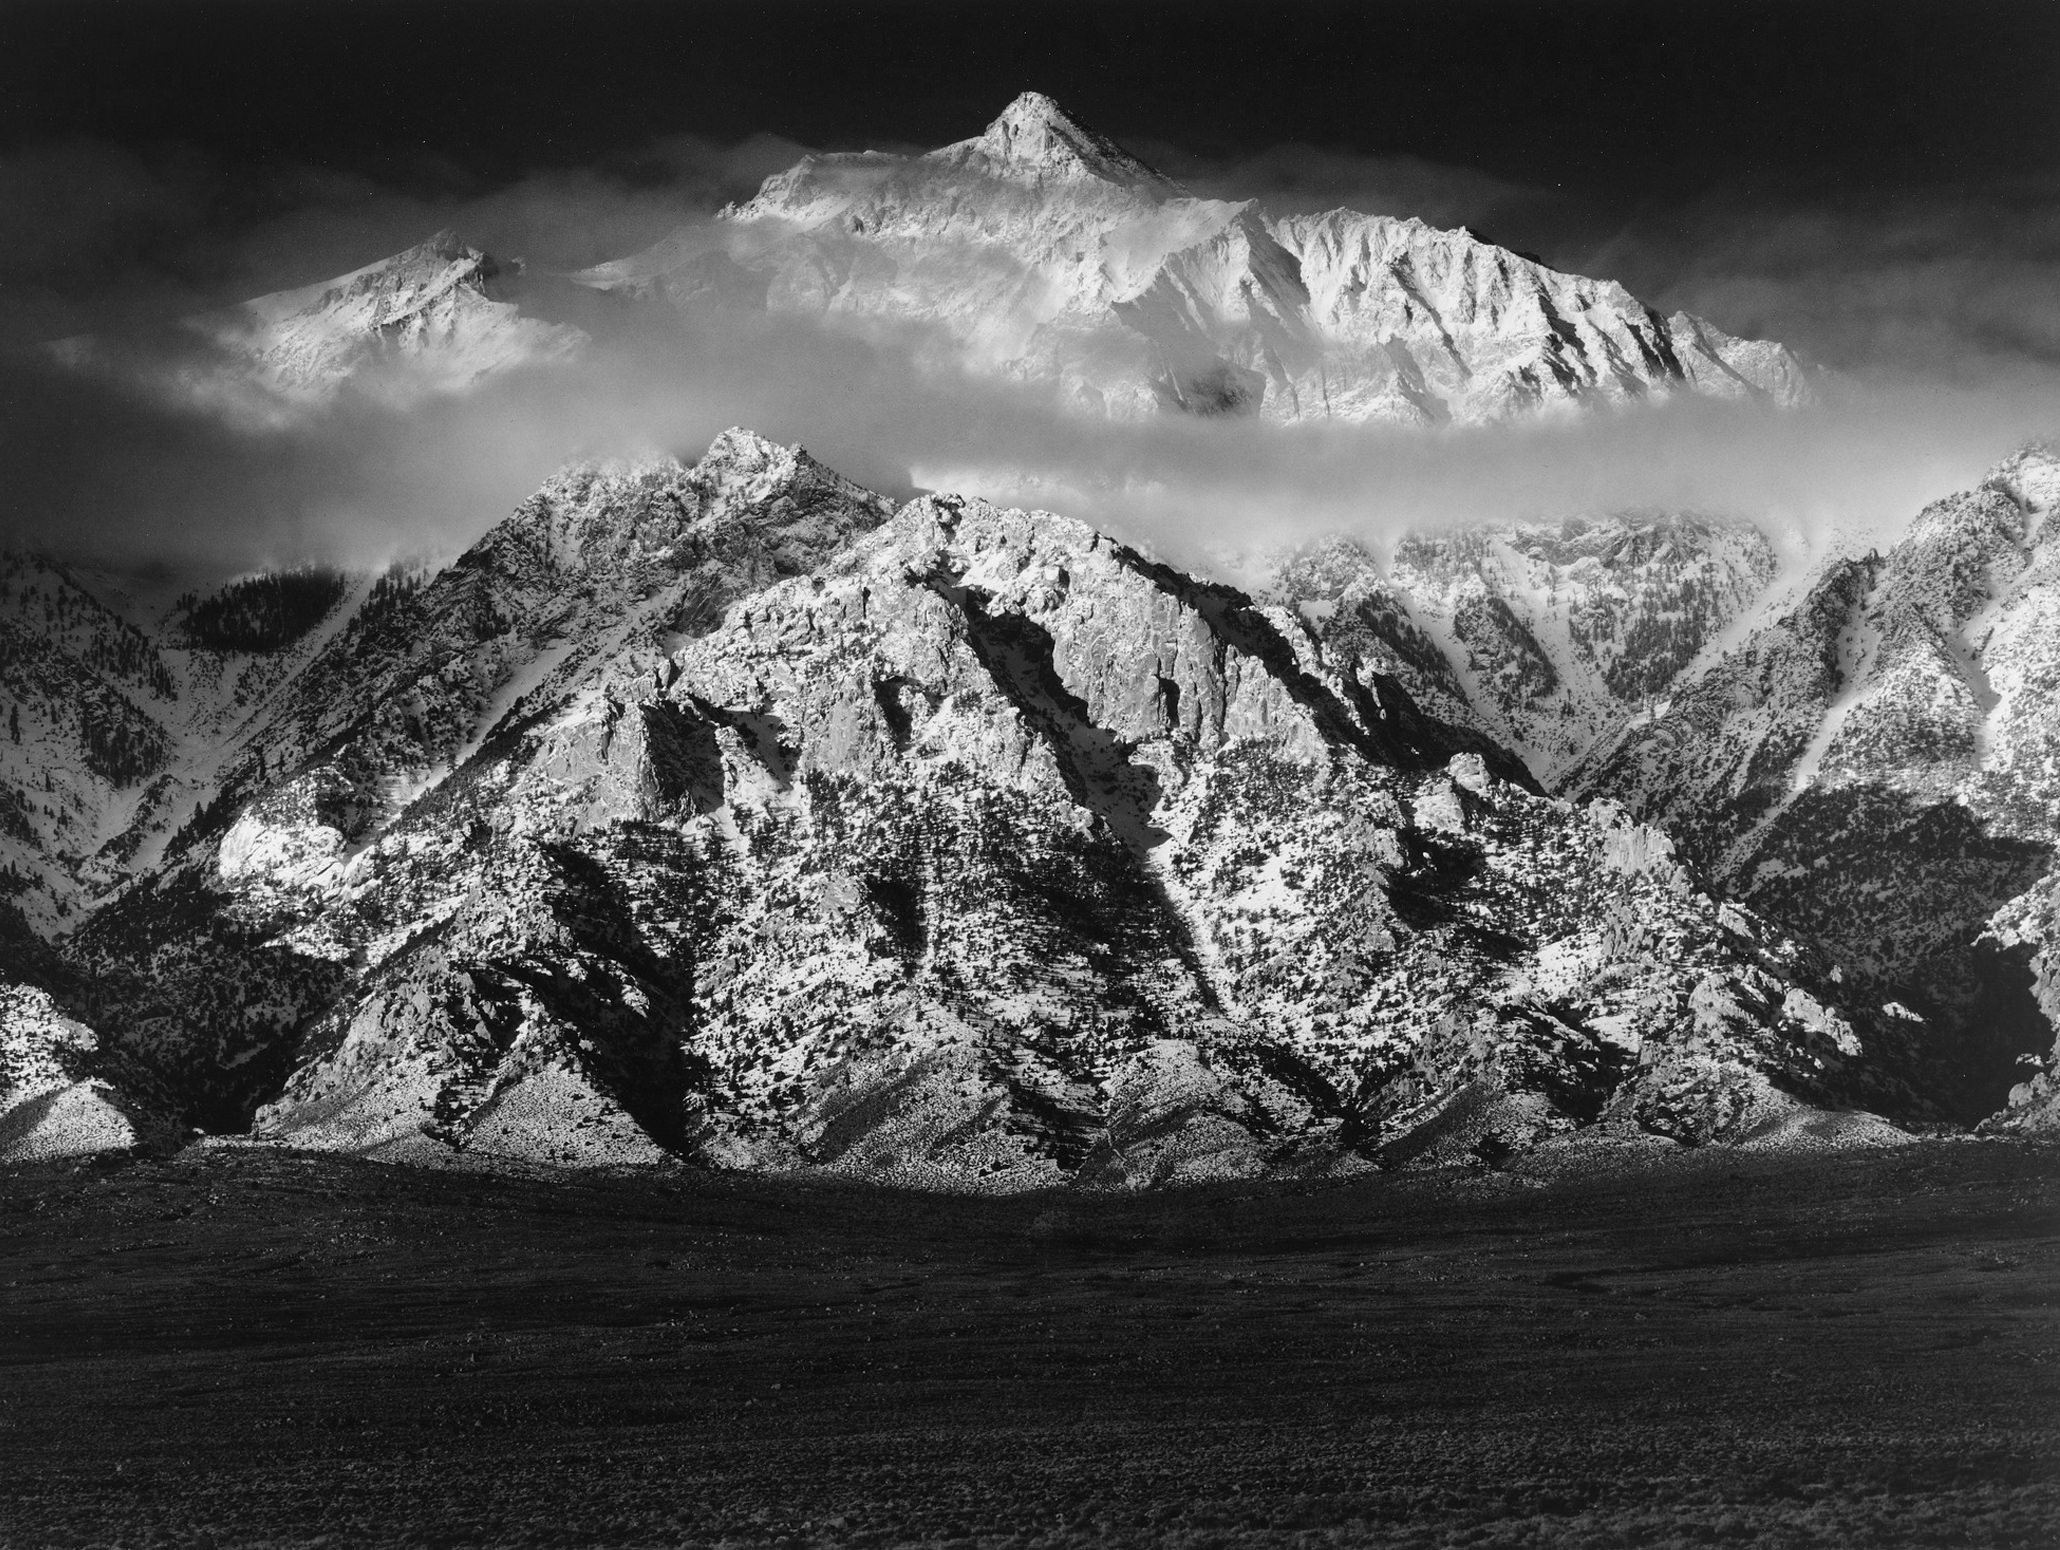 Ansel Adams Mount Williamson Sierra Nevada From The Owens Valley California 1944